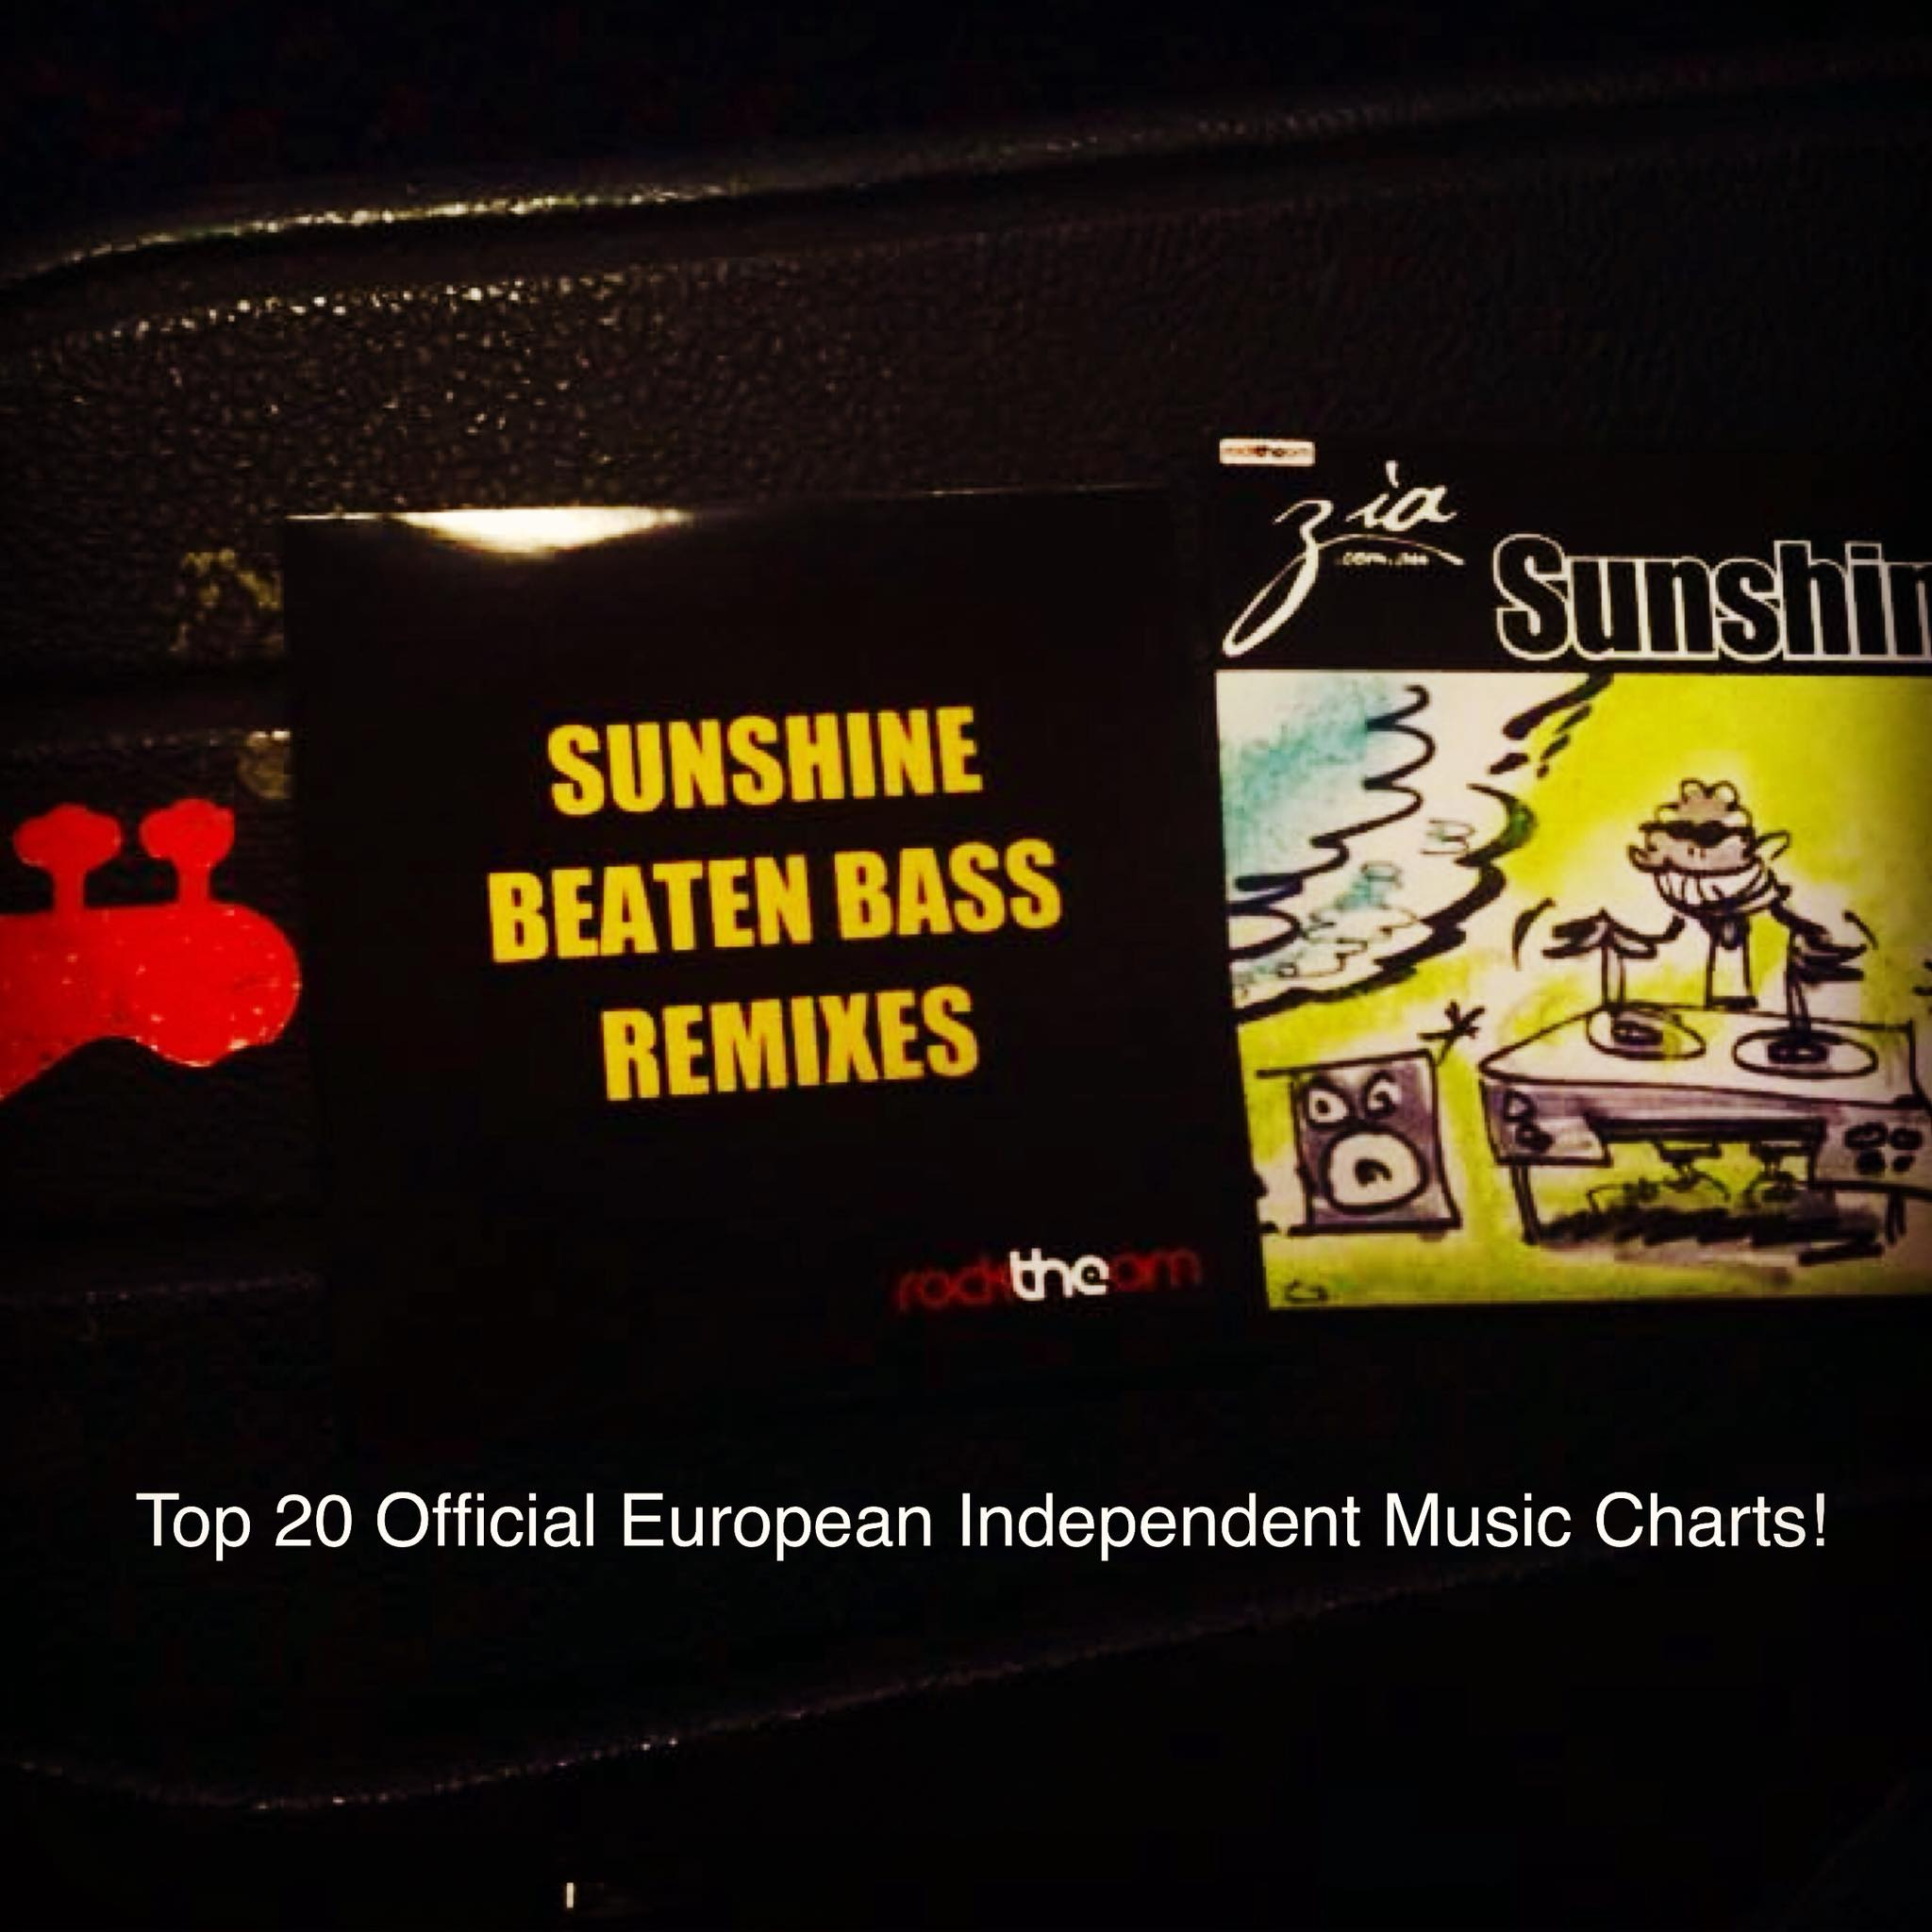 Top 20_Official European Independent Music Charts